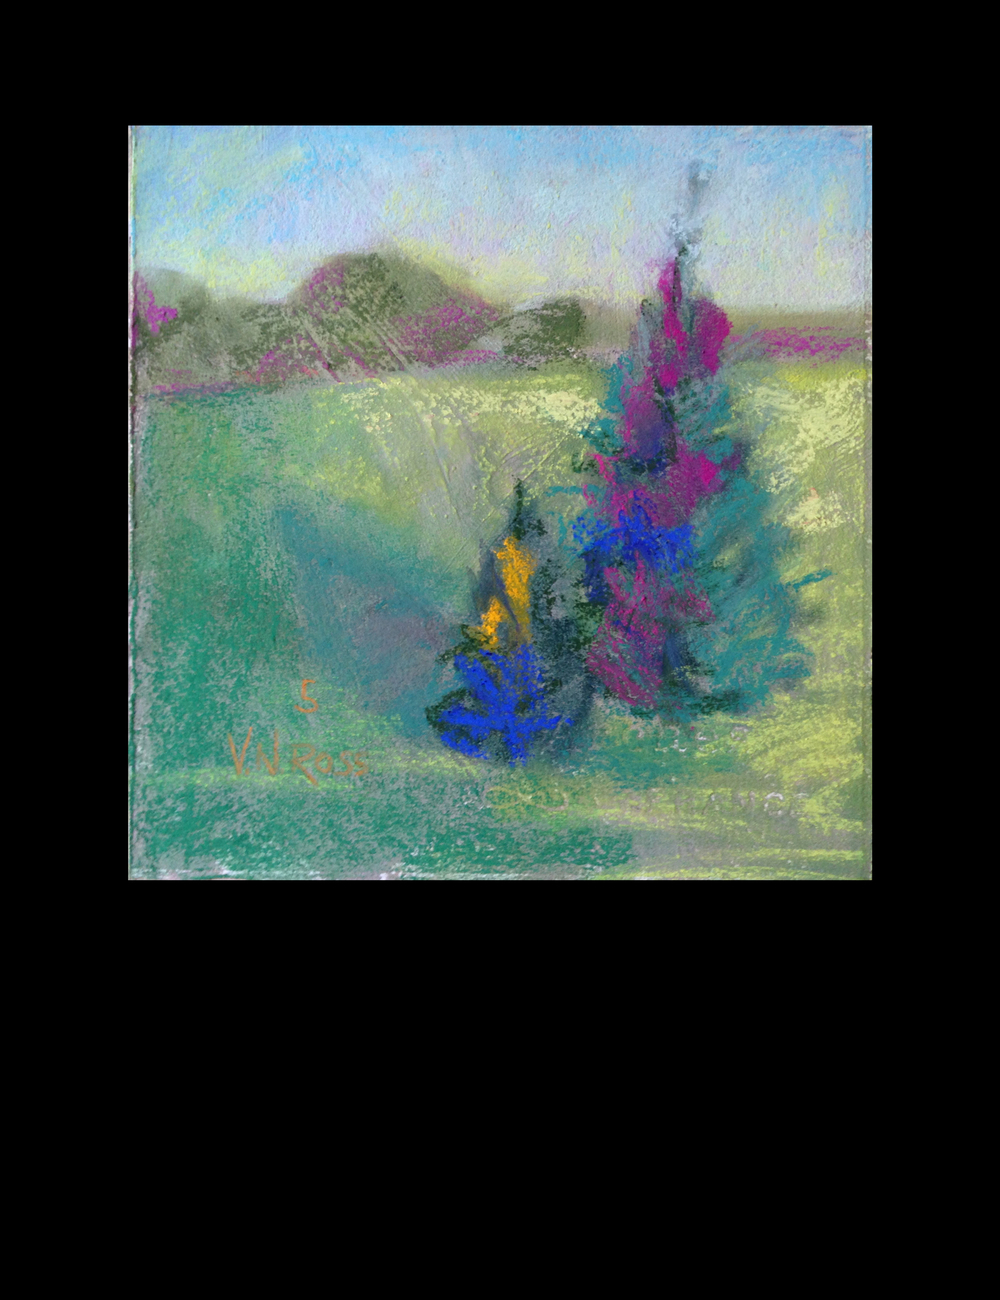 "#5 Over and Over Again 7.5"" x 7.5"" Pastel © V.N.Ross"